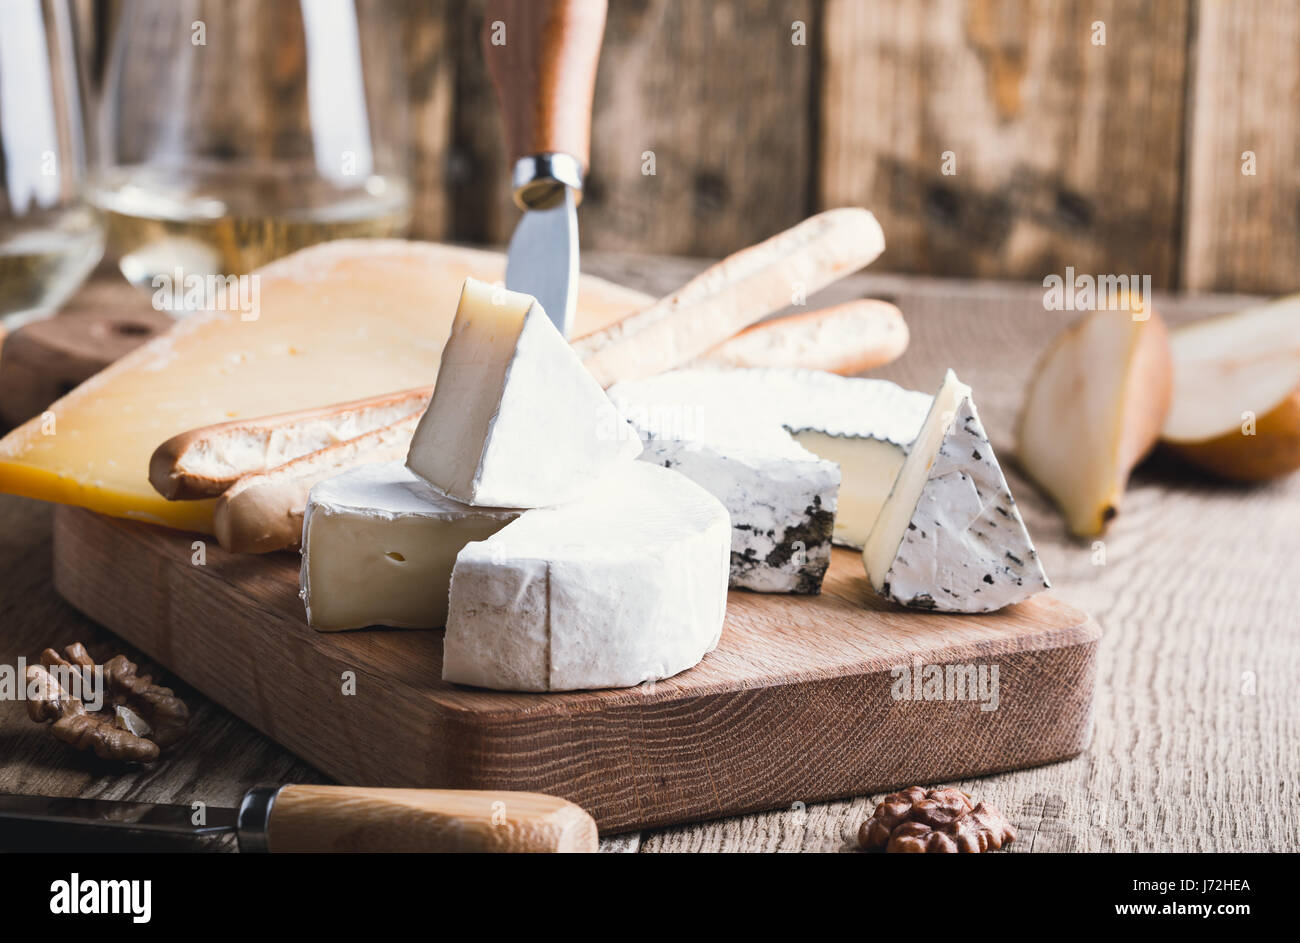 Cheese platter served with white wine,pear and walnuts on wooden board on rustic table - Stock Image